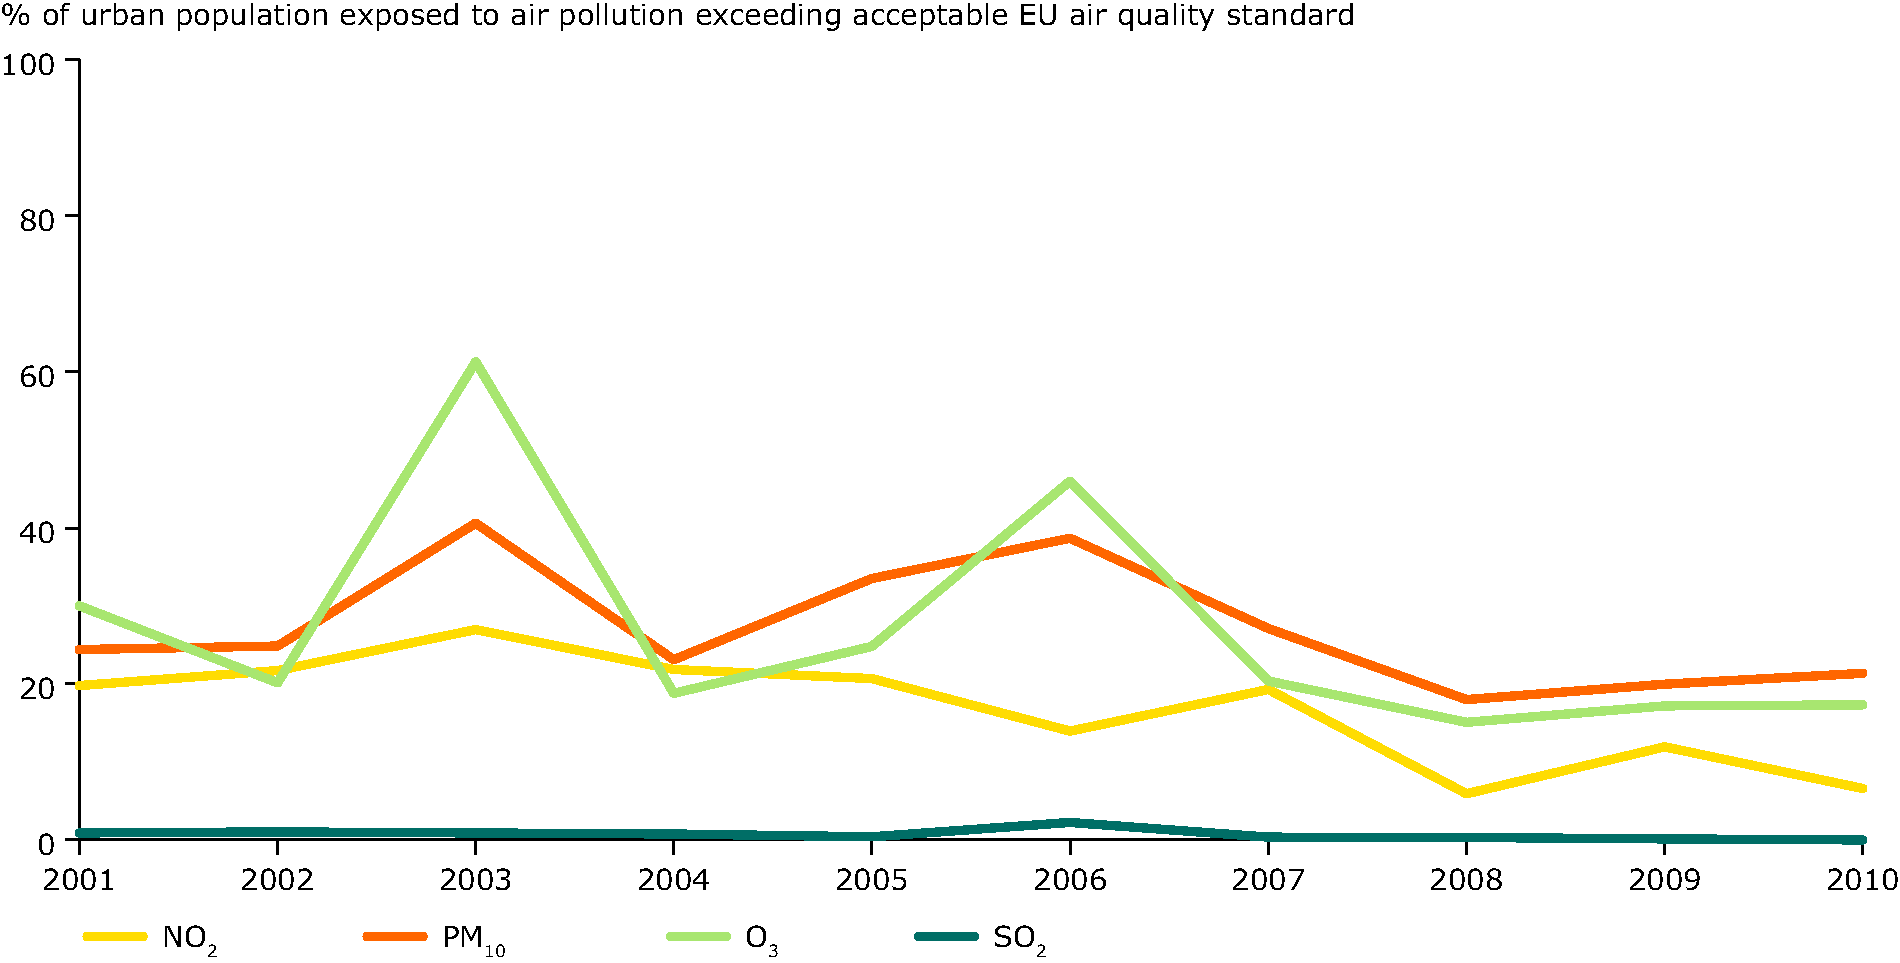 Percentage of urban population resident in areas where pollutant concentrations are higher than selected limit/target values, 2001-2010 (EU-27)